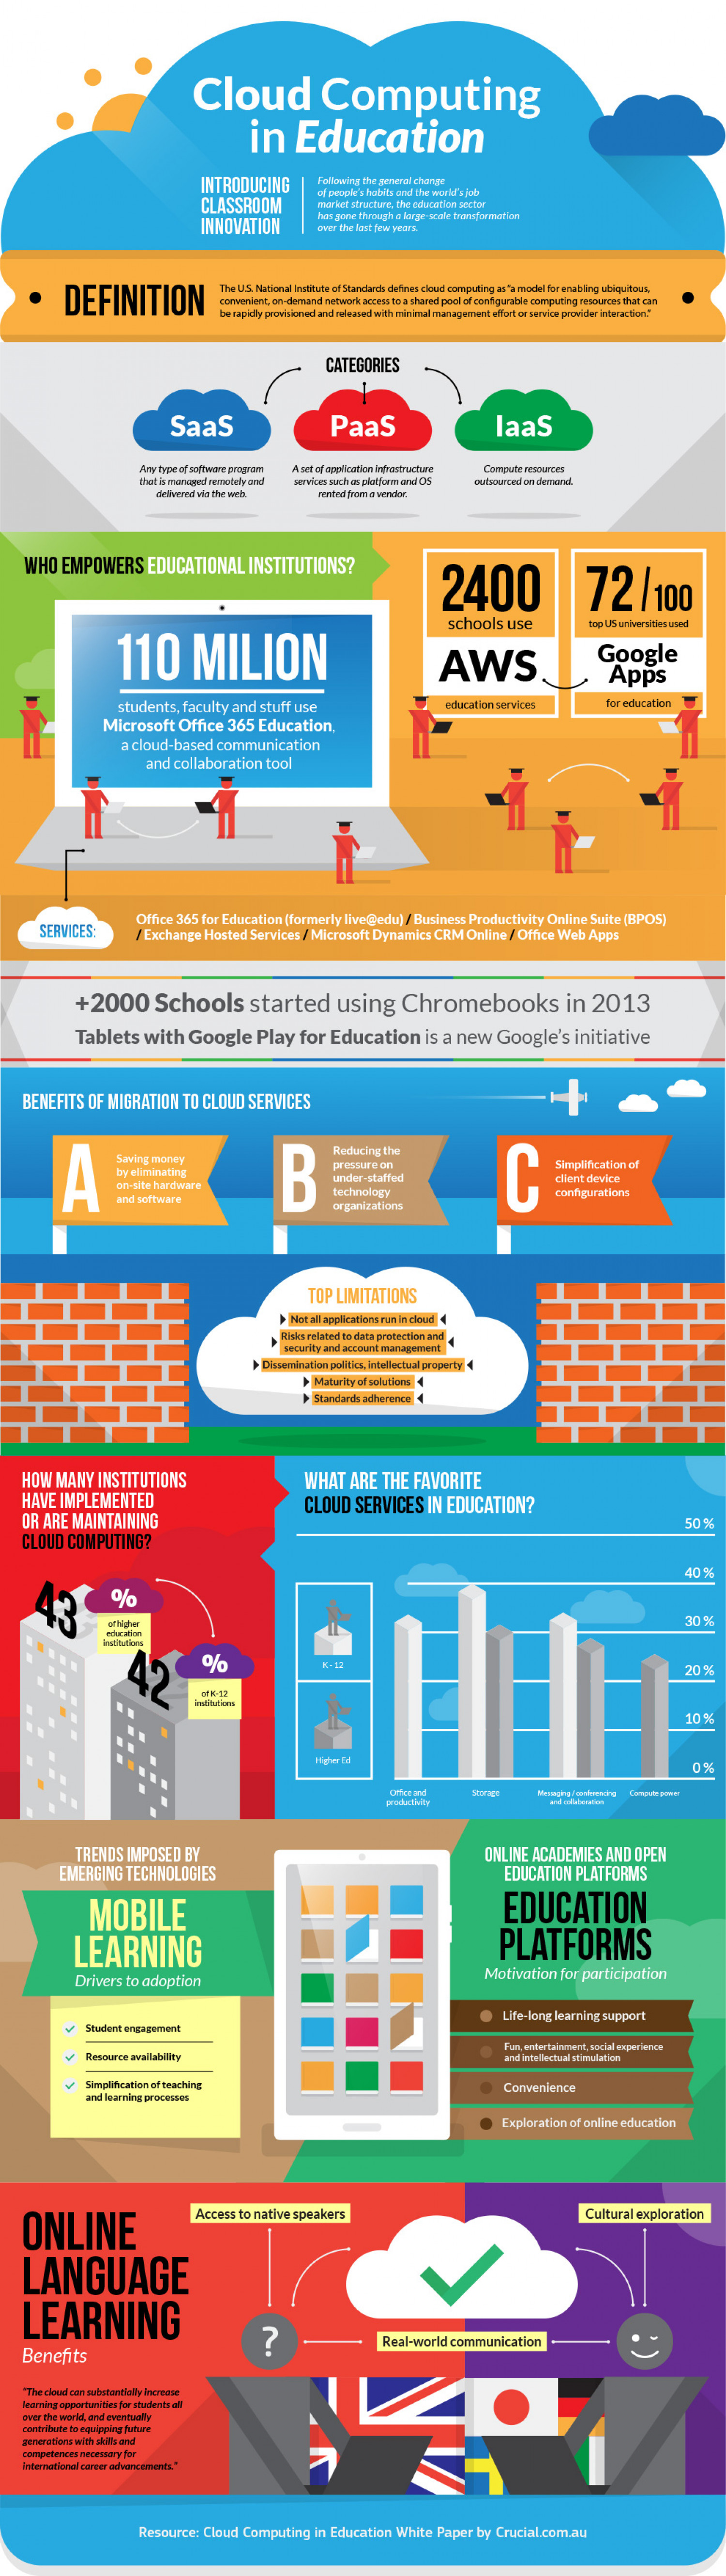 Cloud Computing in Education Infographic